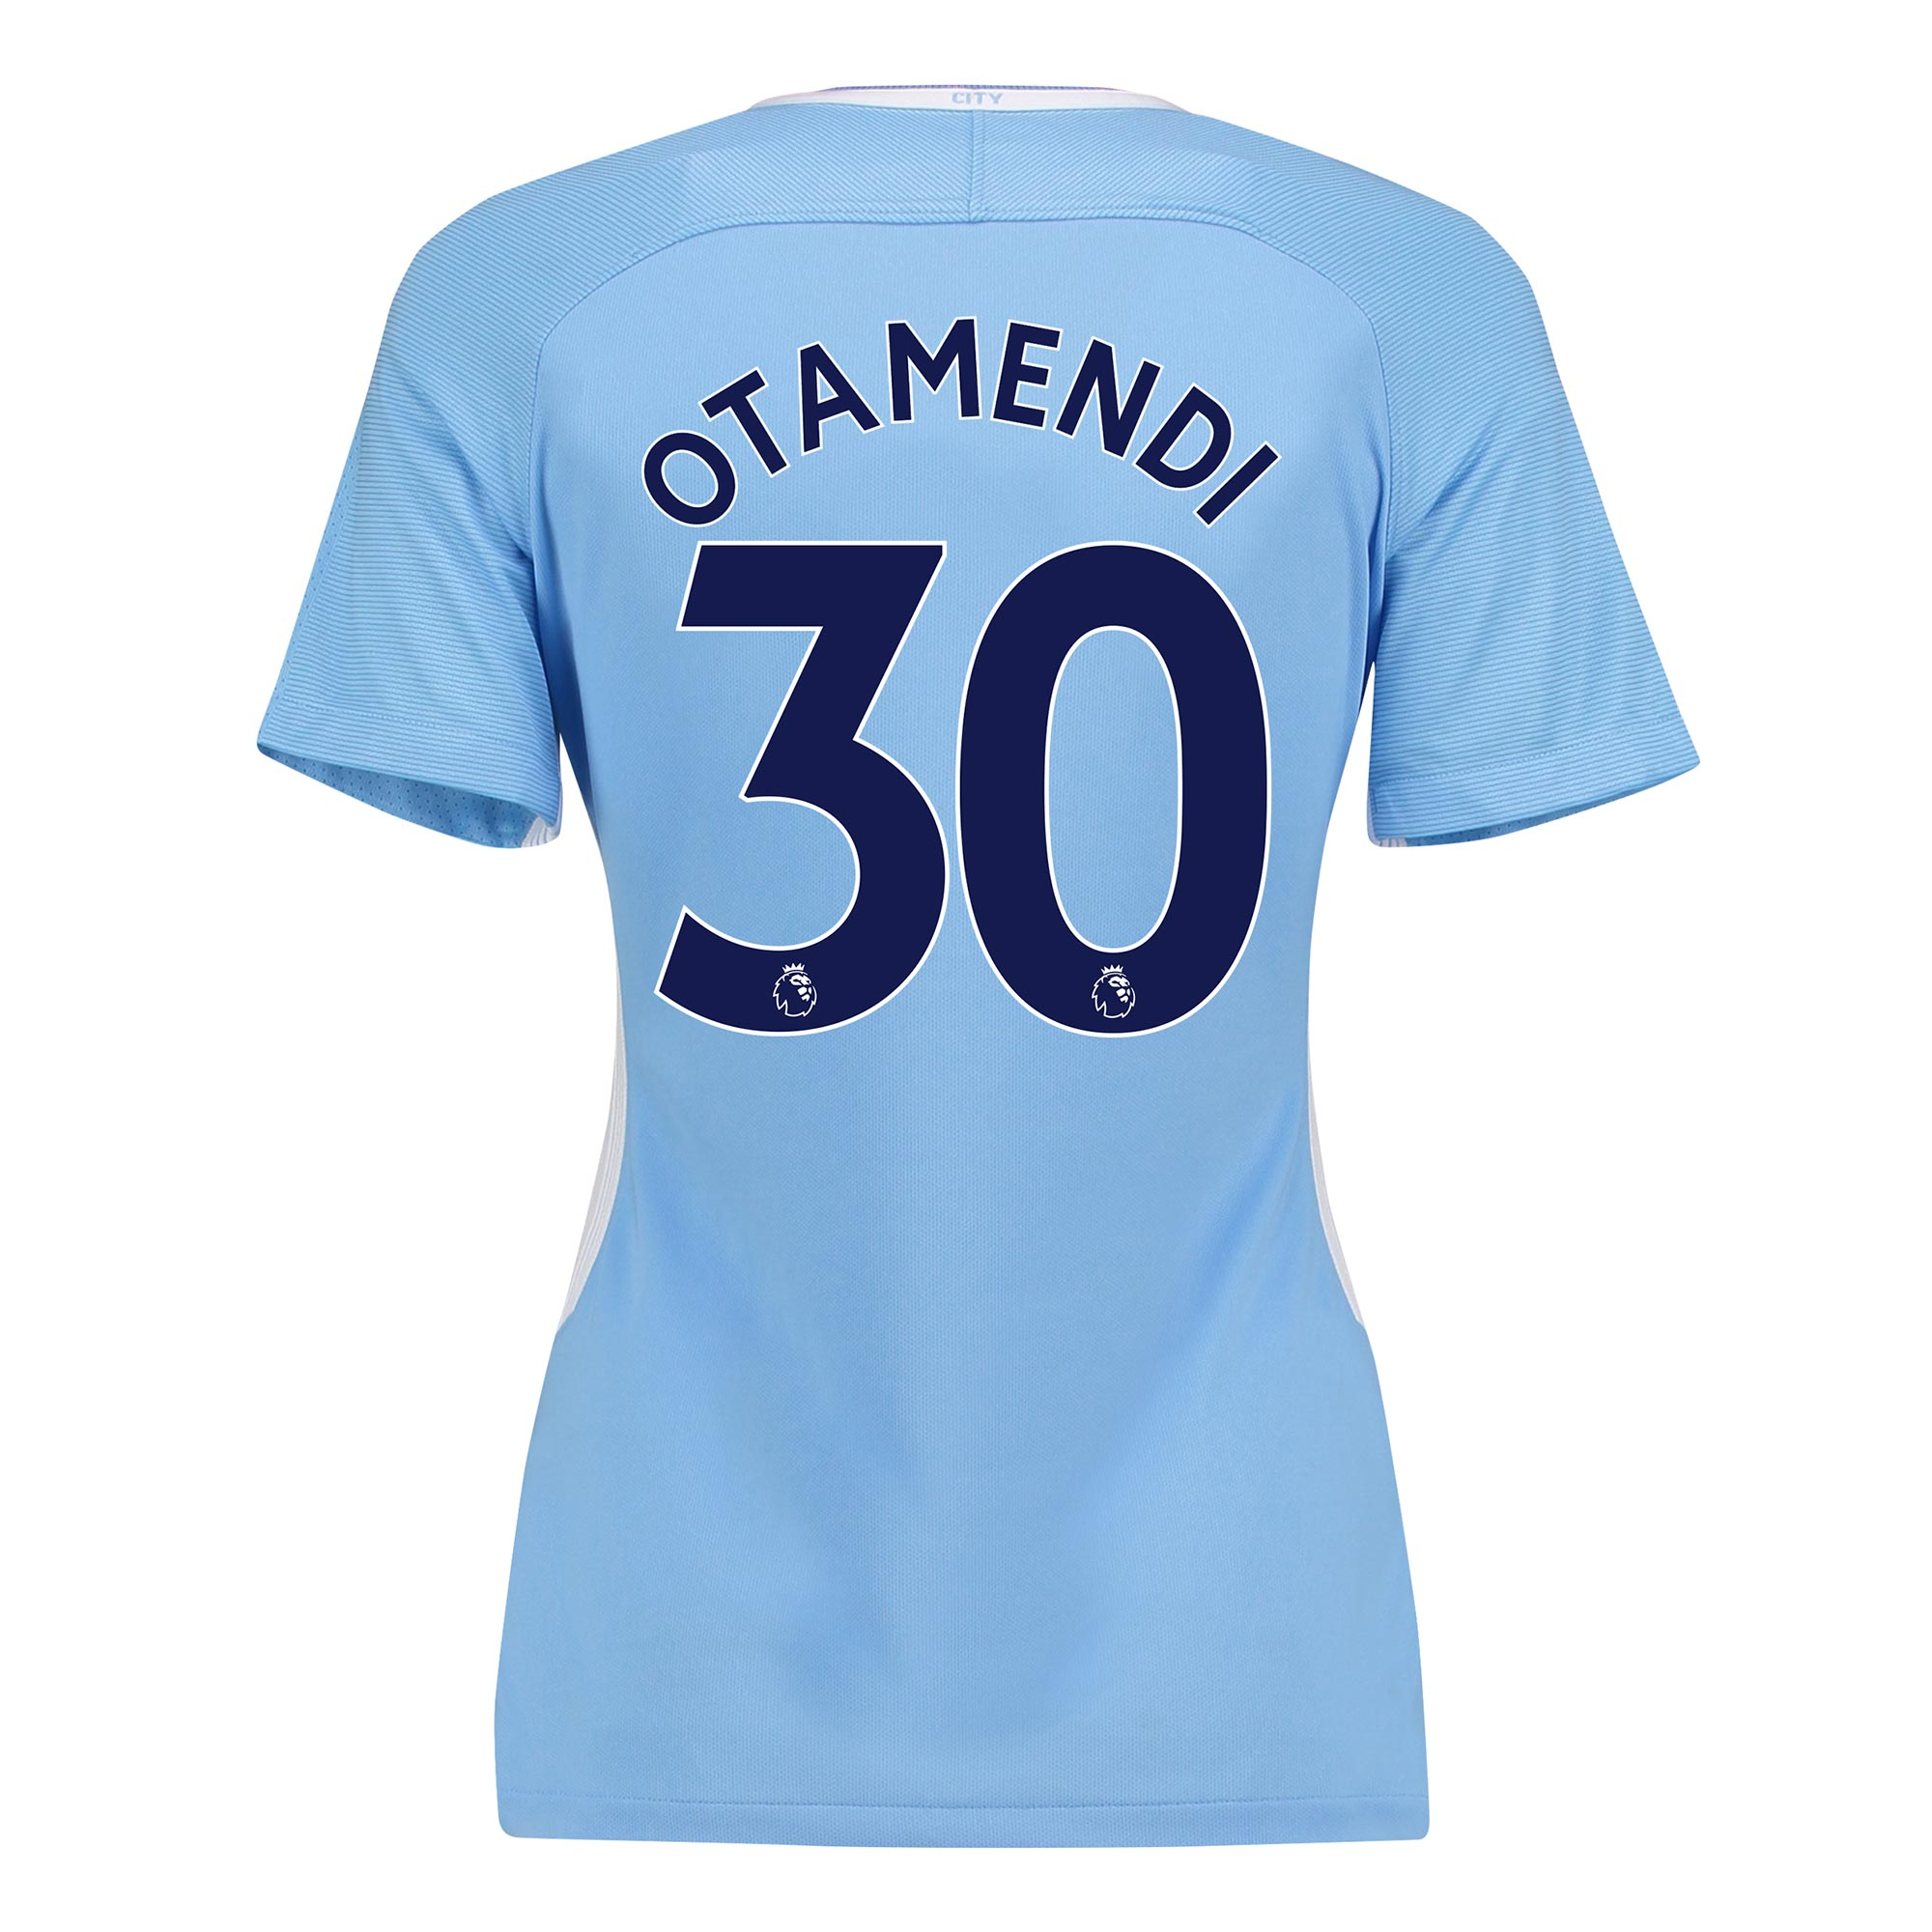 Manchester City Home Stadium Shirt 2017-18 - Womens with Otamendi 30 p